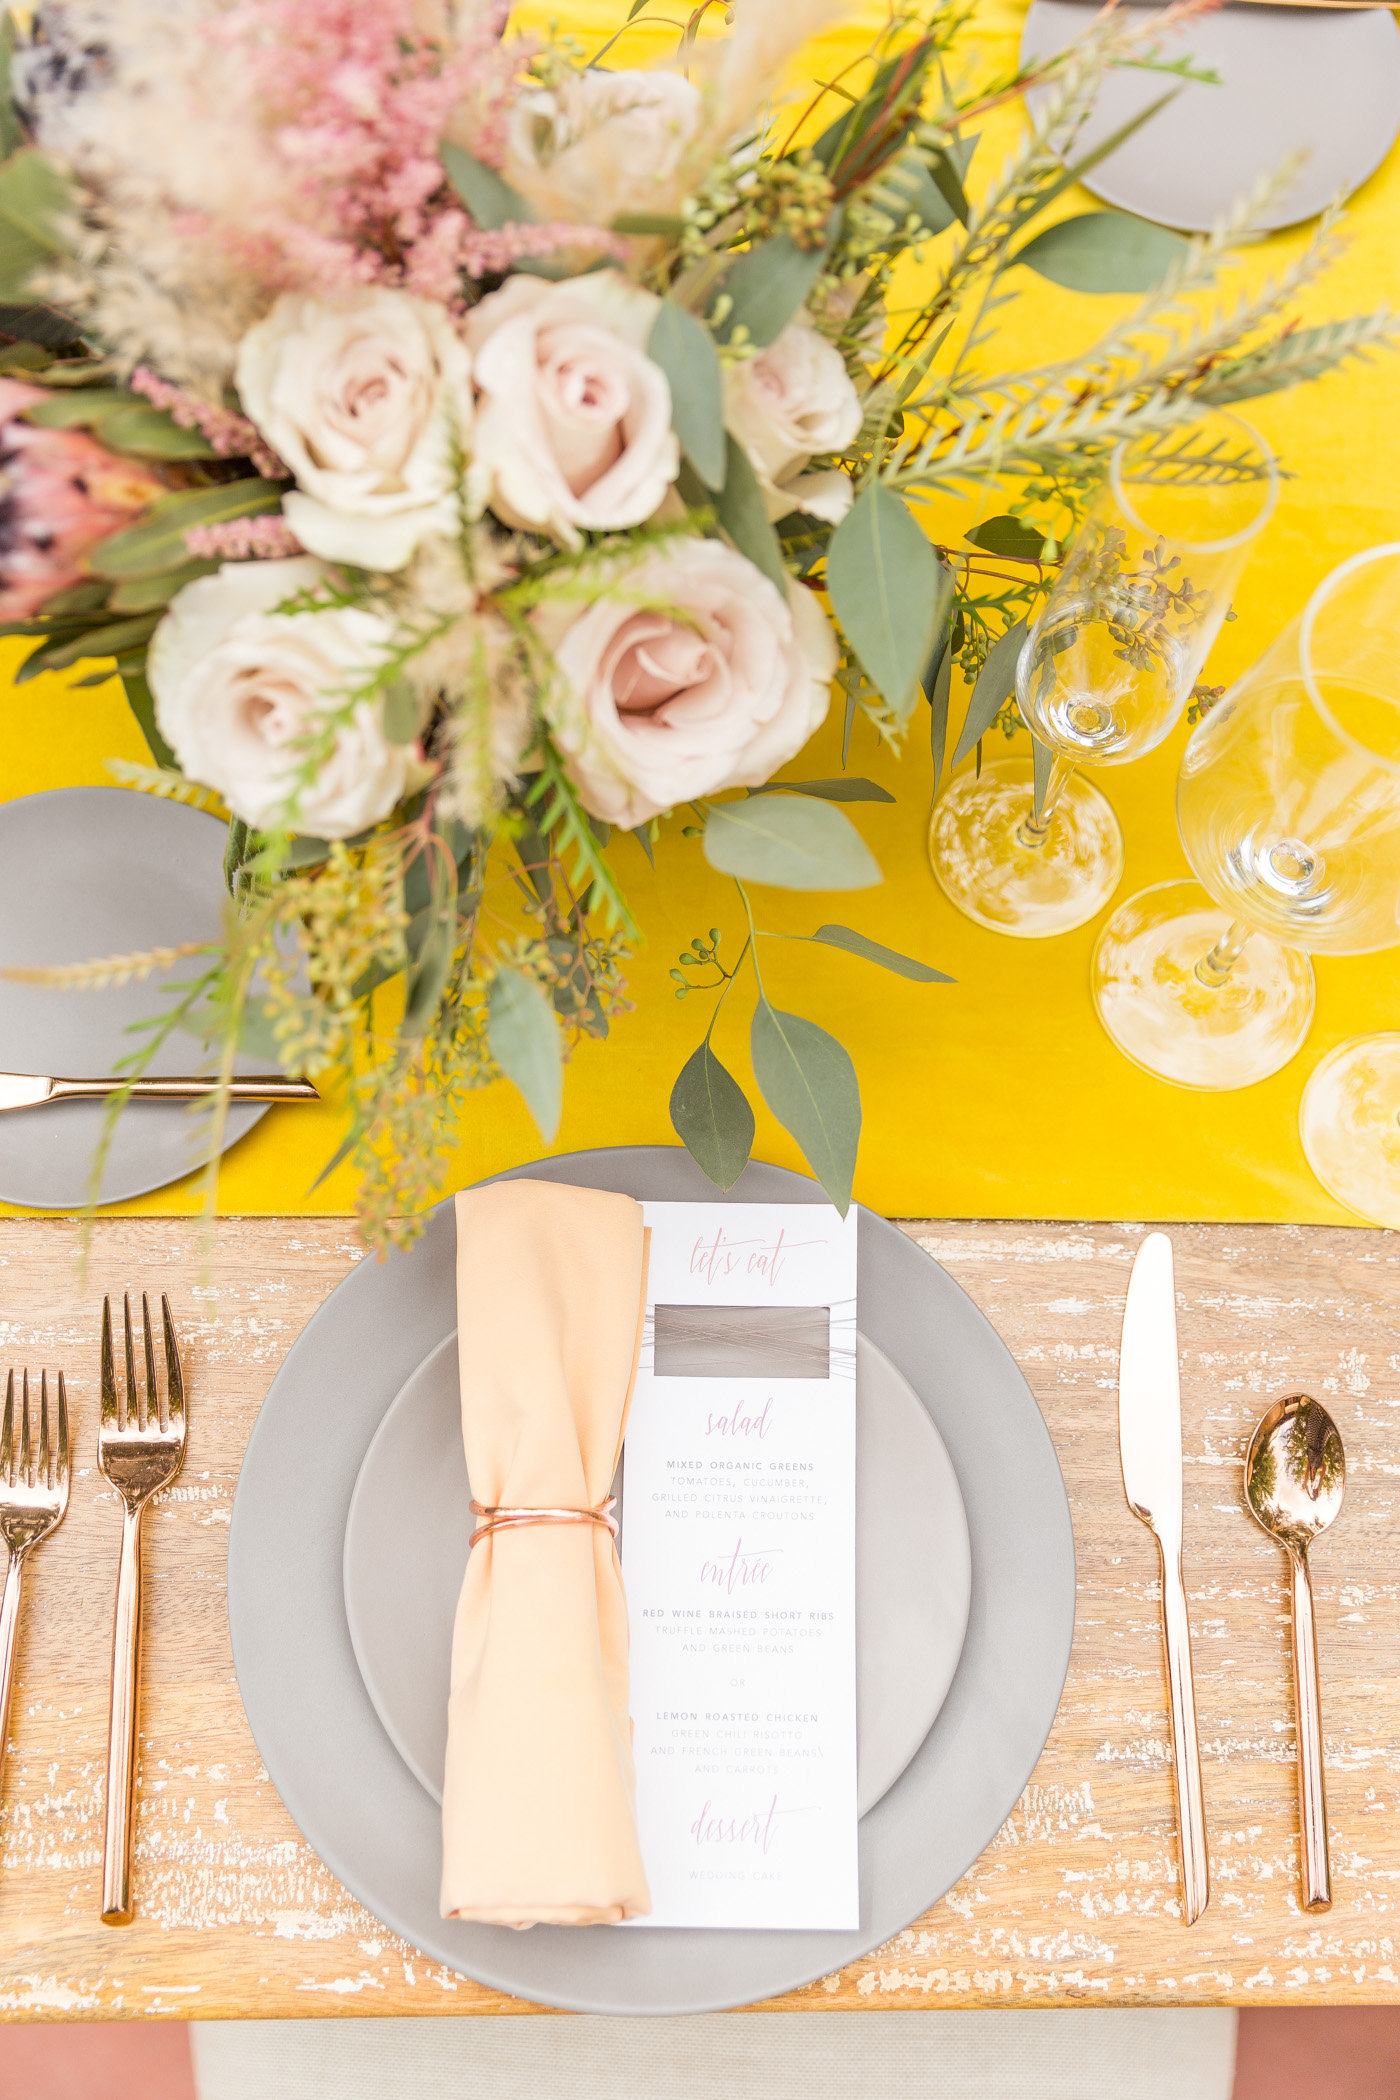 modern wedding table inspiration - photo by Karlee K Photography http://ruffledblog.com/cheerful-desert-wedding-inspiration-with-bright-yellow